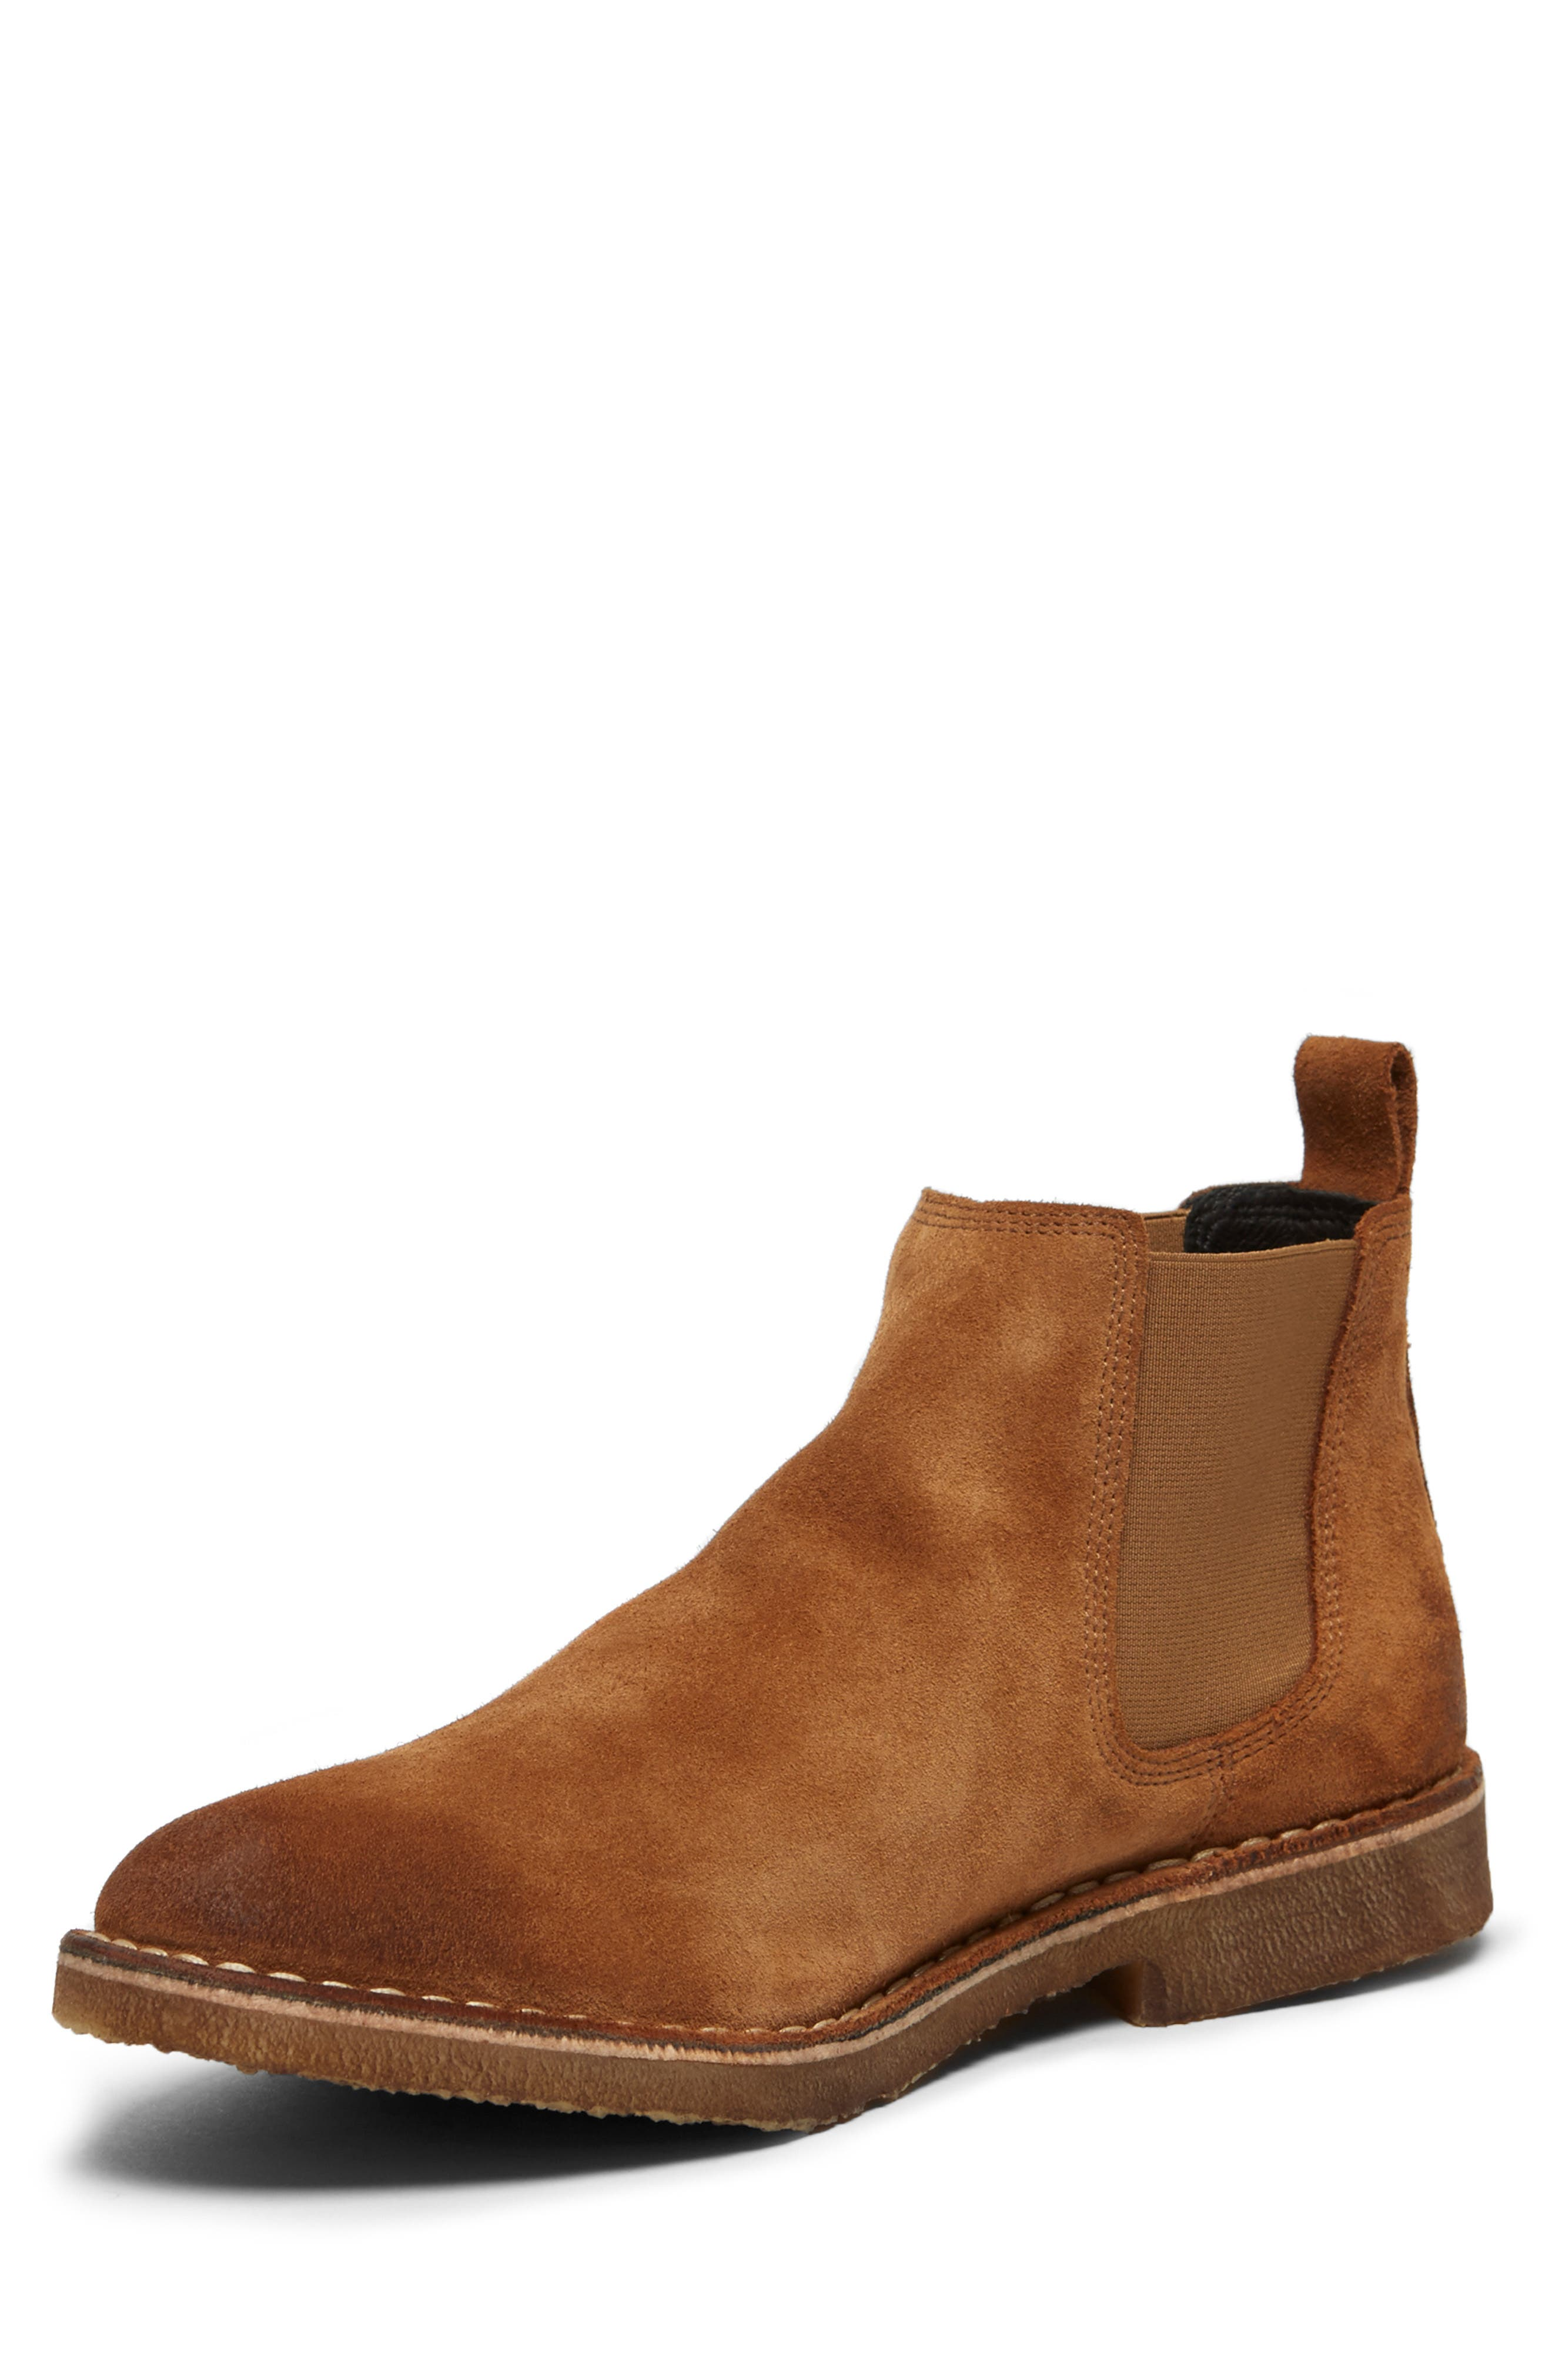 KENNETH COLE NEW YORK, Hewitt Chelsea Boot, Alternate thumbnail 5, color, RUST SUEDE